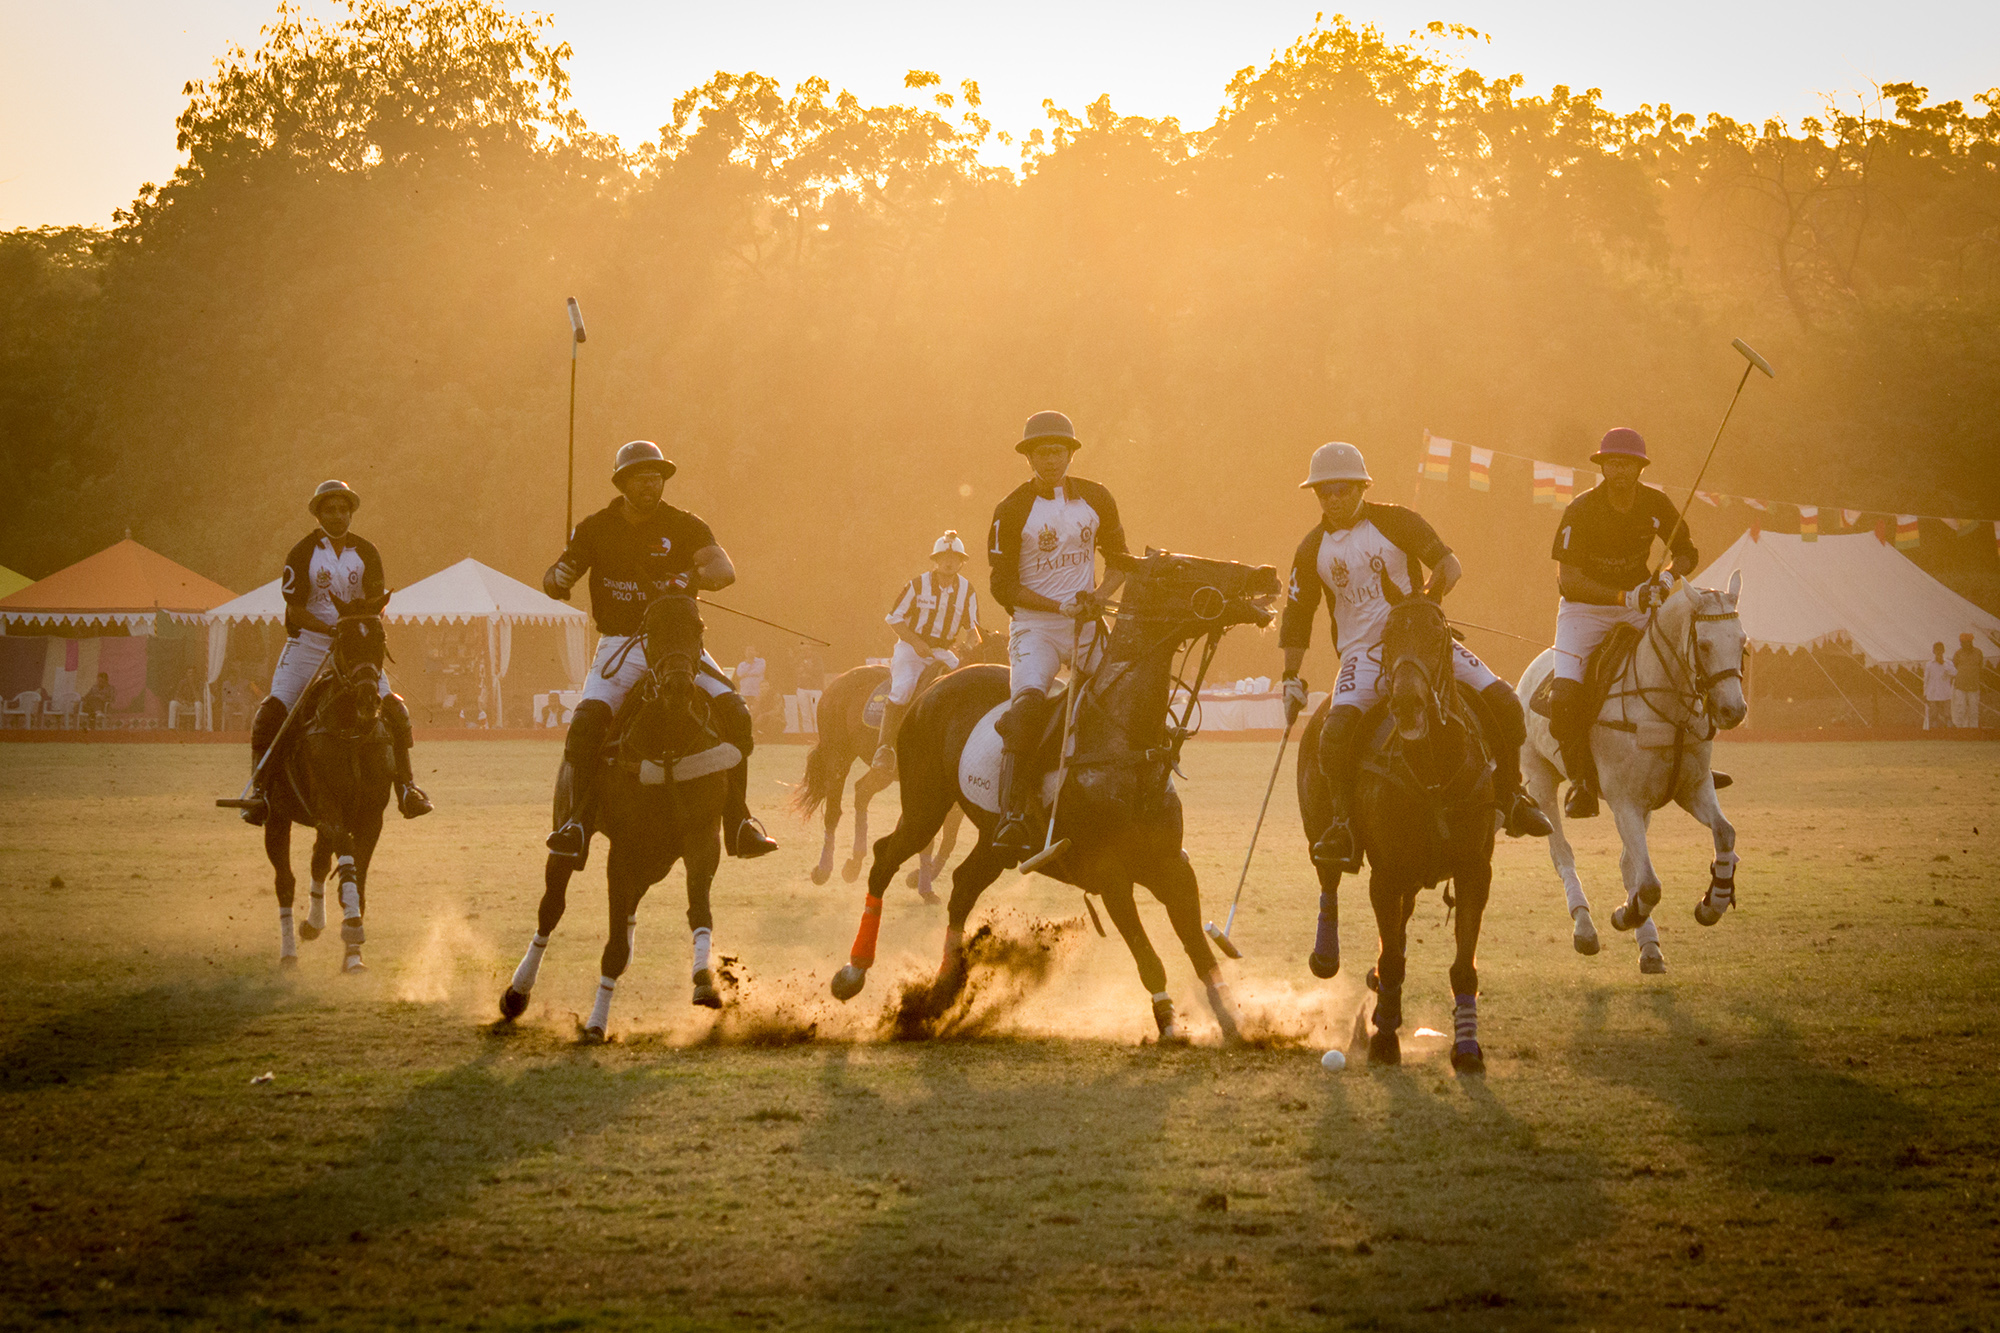 A thrilling moment from the Jodhpur polo in against light condition.